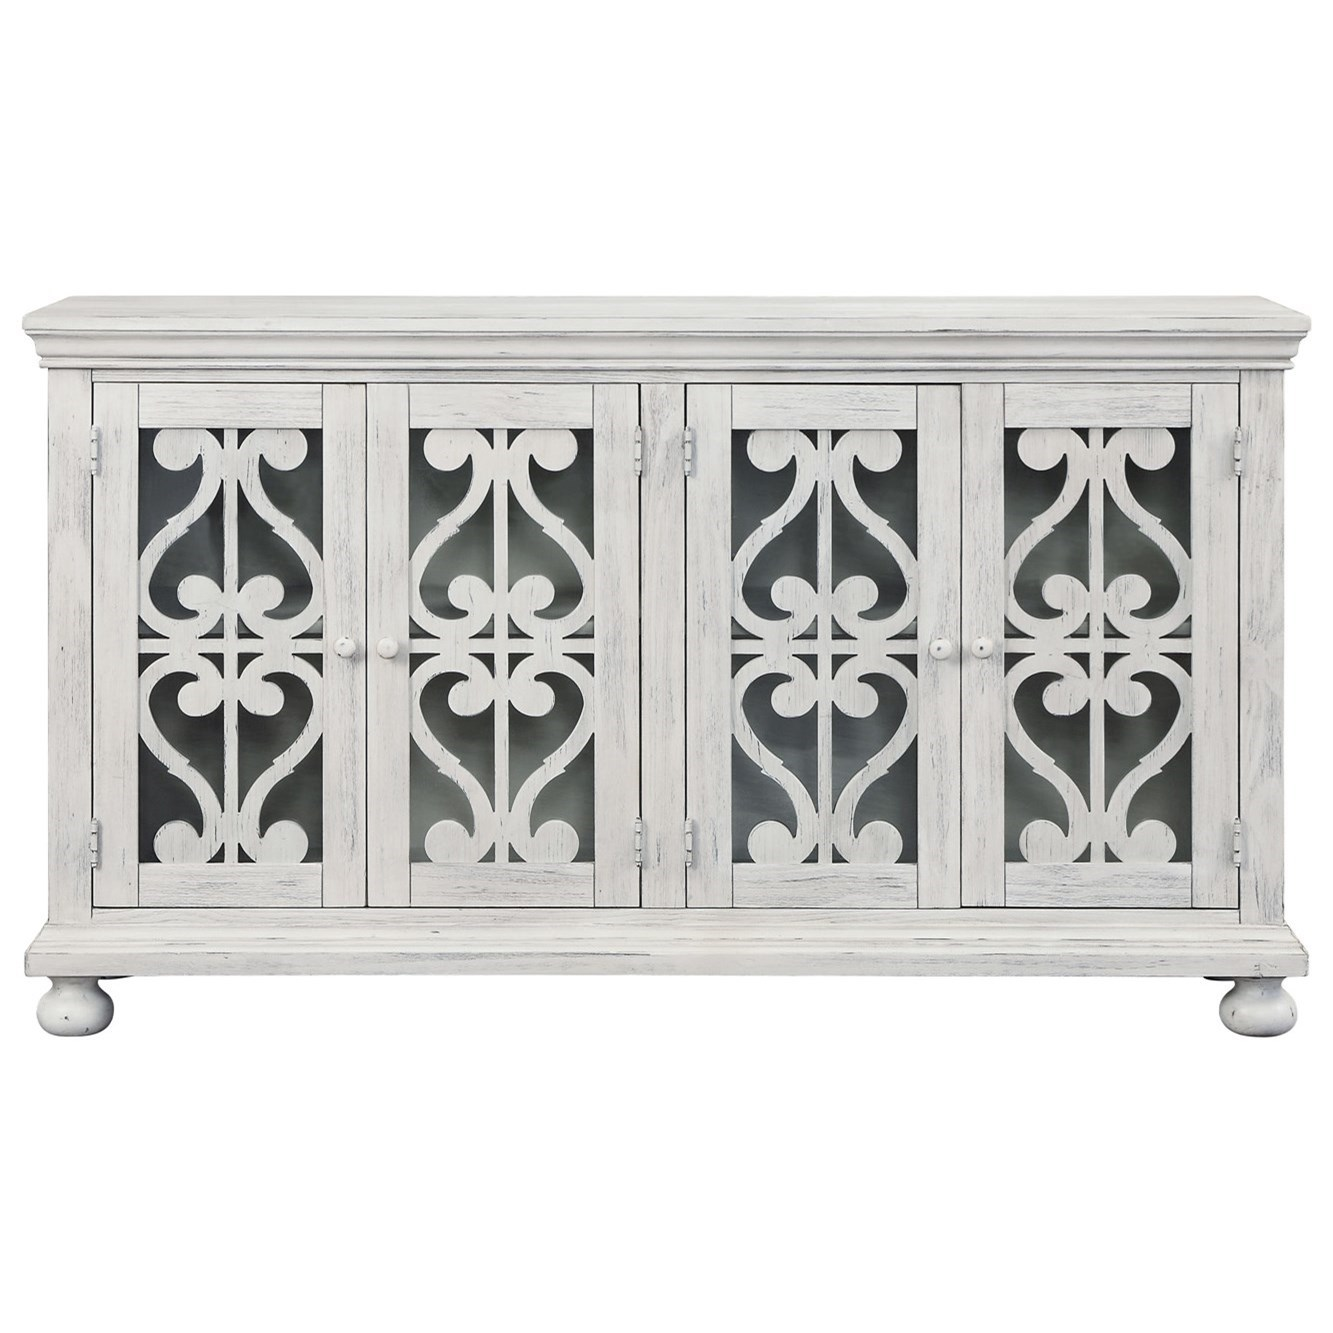 Orchard Park Four Door Media Credenza by Coast to Coast Imports at Baer's Furniture